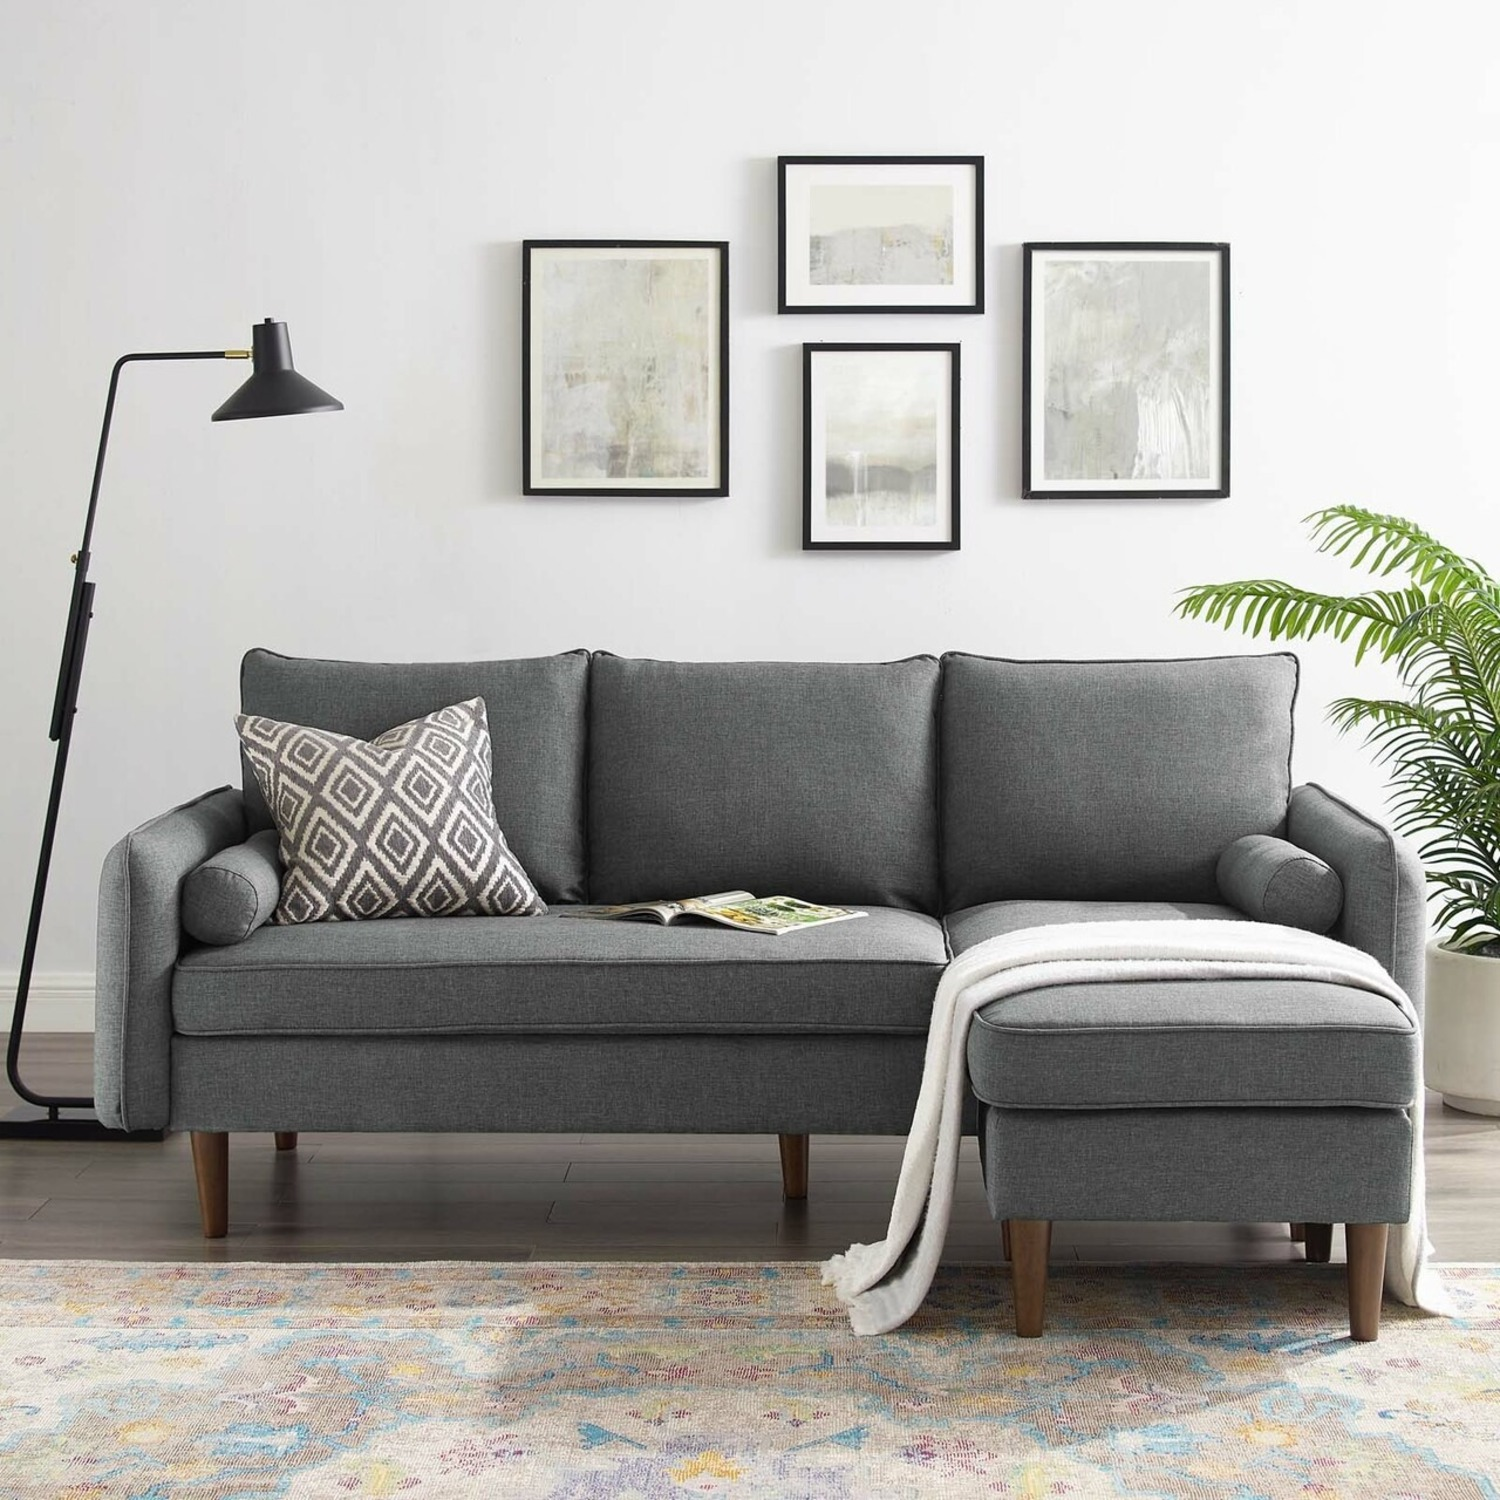 2-Piece Sectional Sofa In Gray Upholstery Finish - image-10